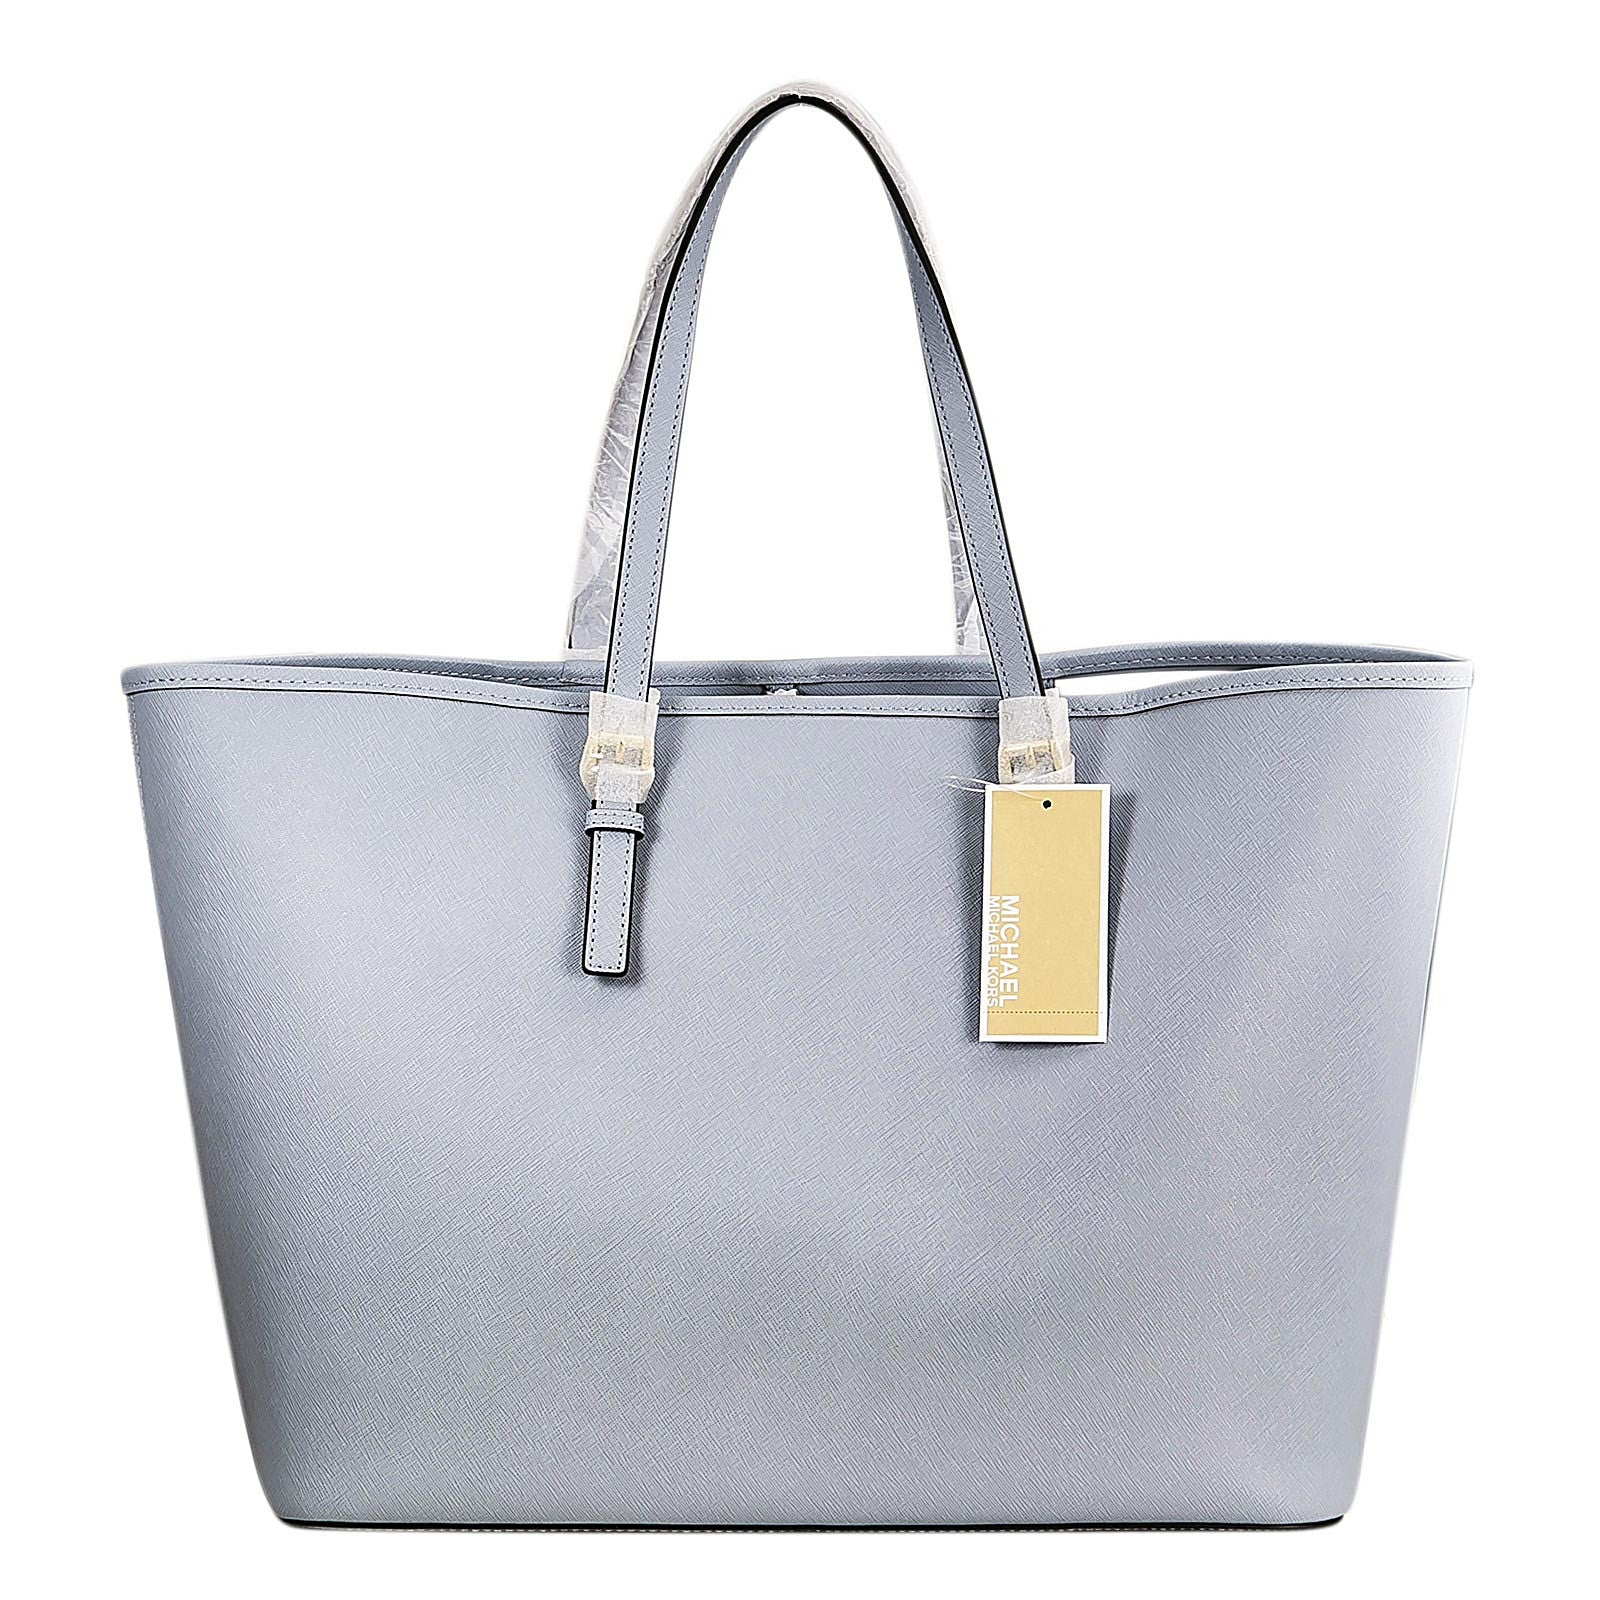 Michael Kors 30H1GTVT2L-487 Women's Jet Set Travel Pale Blue Saffiano Leather Medium Tote